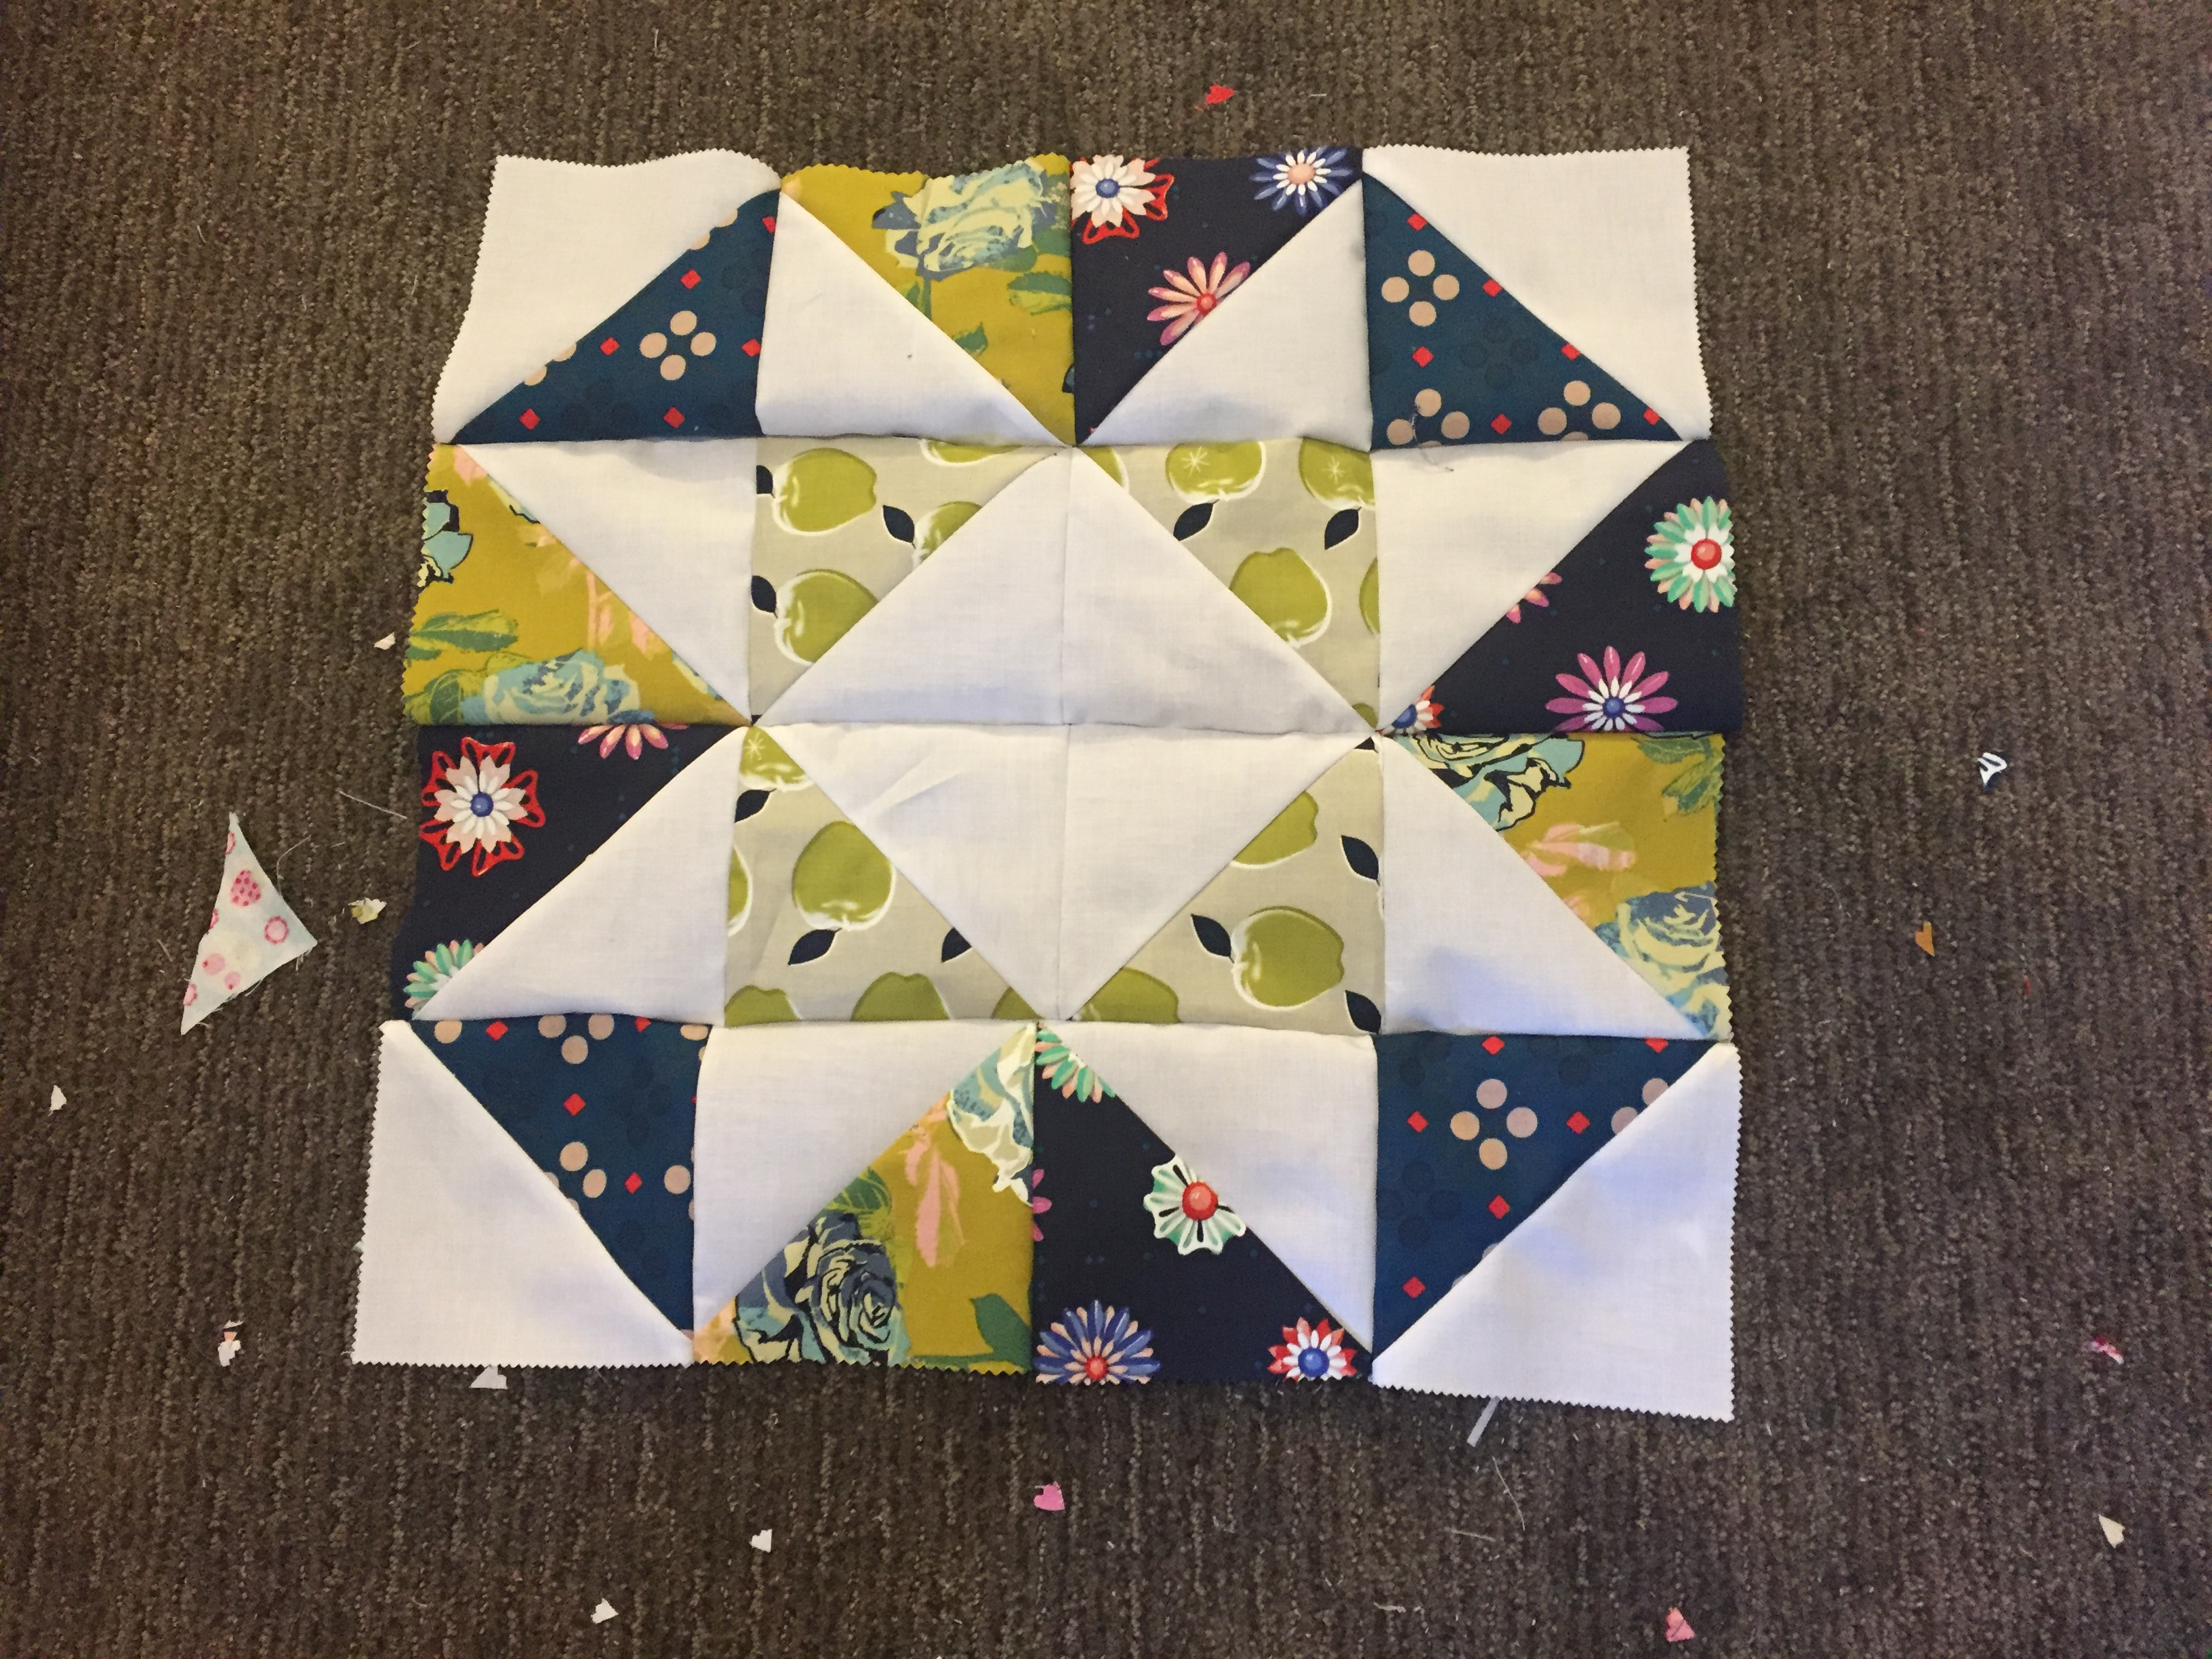 together of table 4 charm runner large using each.  Sew big square squares squares complete rows each